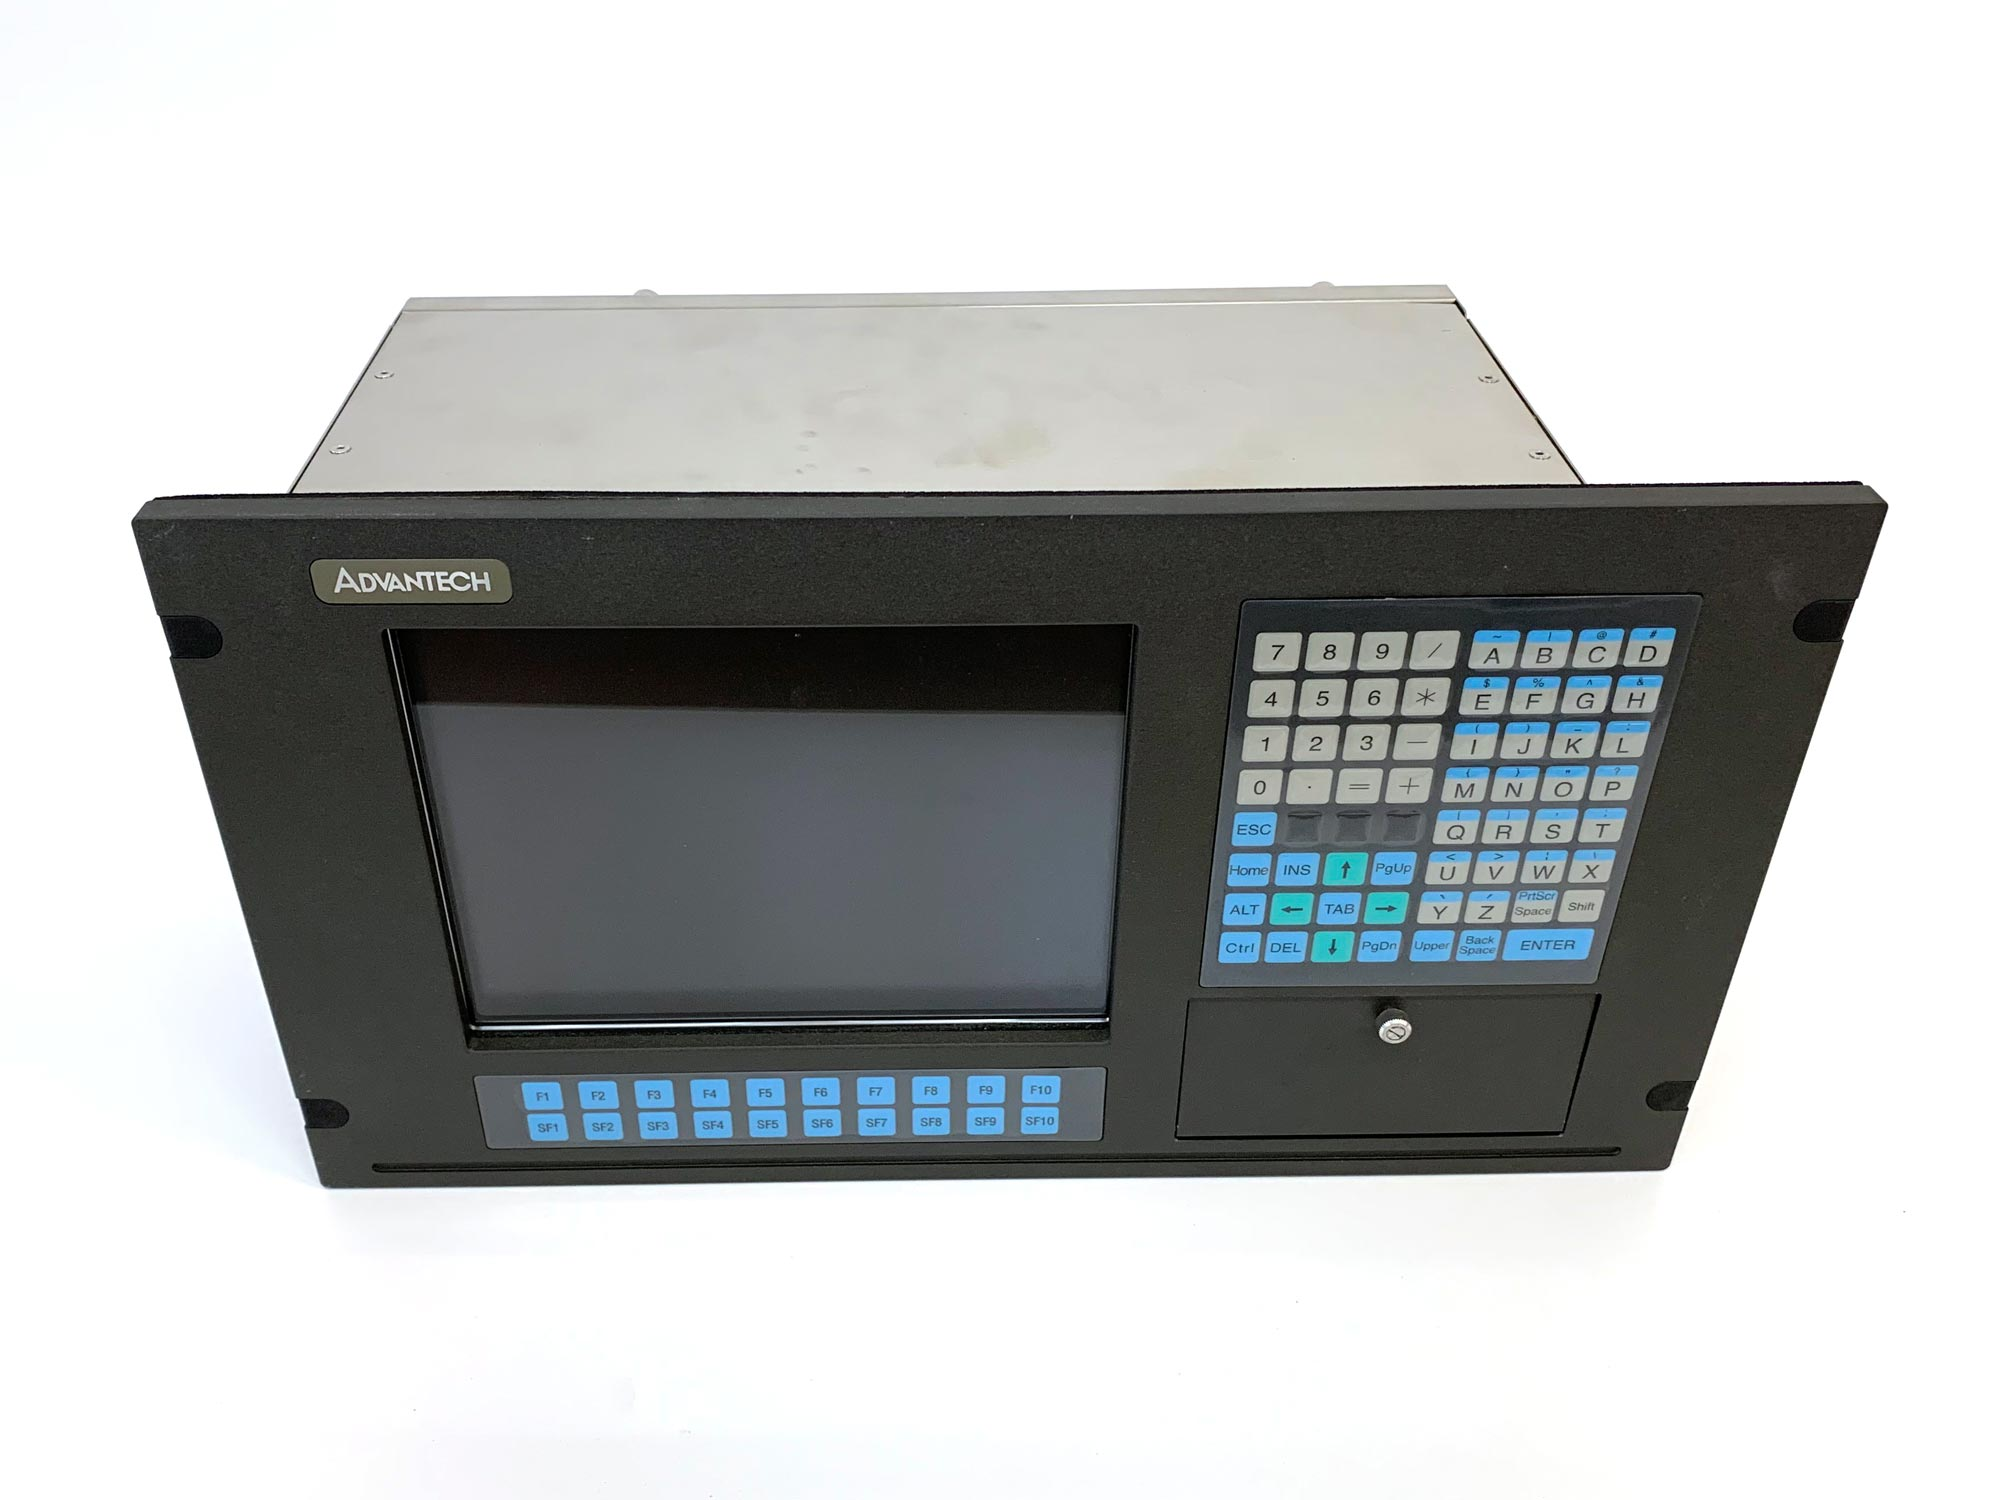 "AWS-843 - Industrie Workstation mit 10,4"" LCD Display"